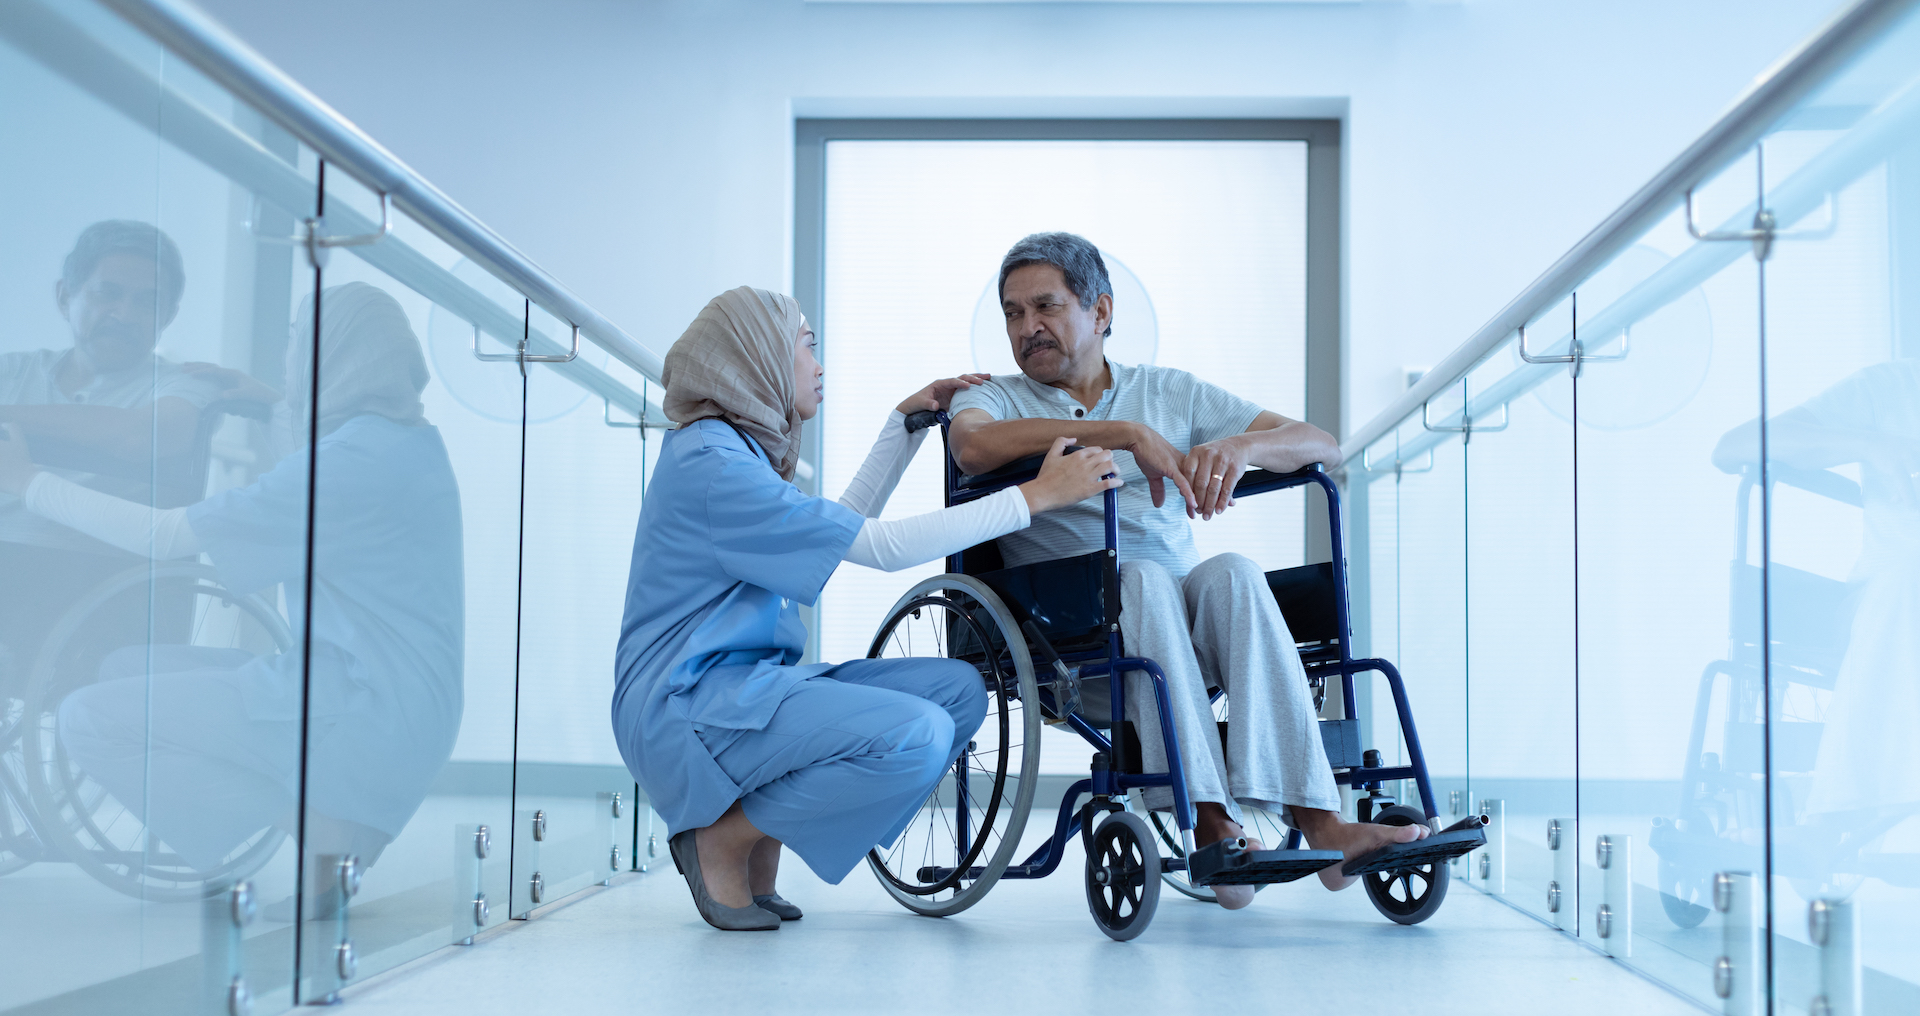 Female doctor in hijab interacting with male patient in wheelchair in the corridor at hospital